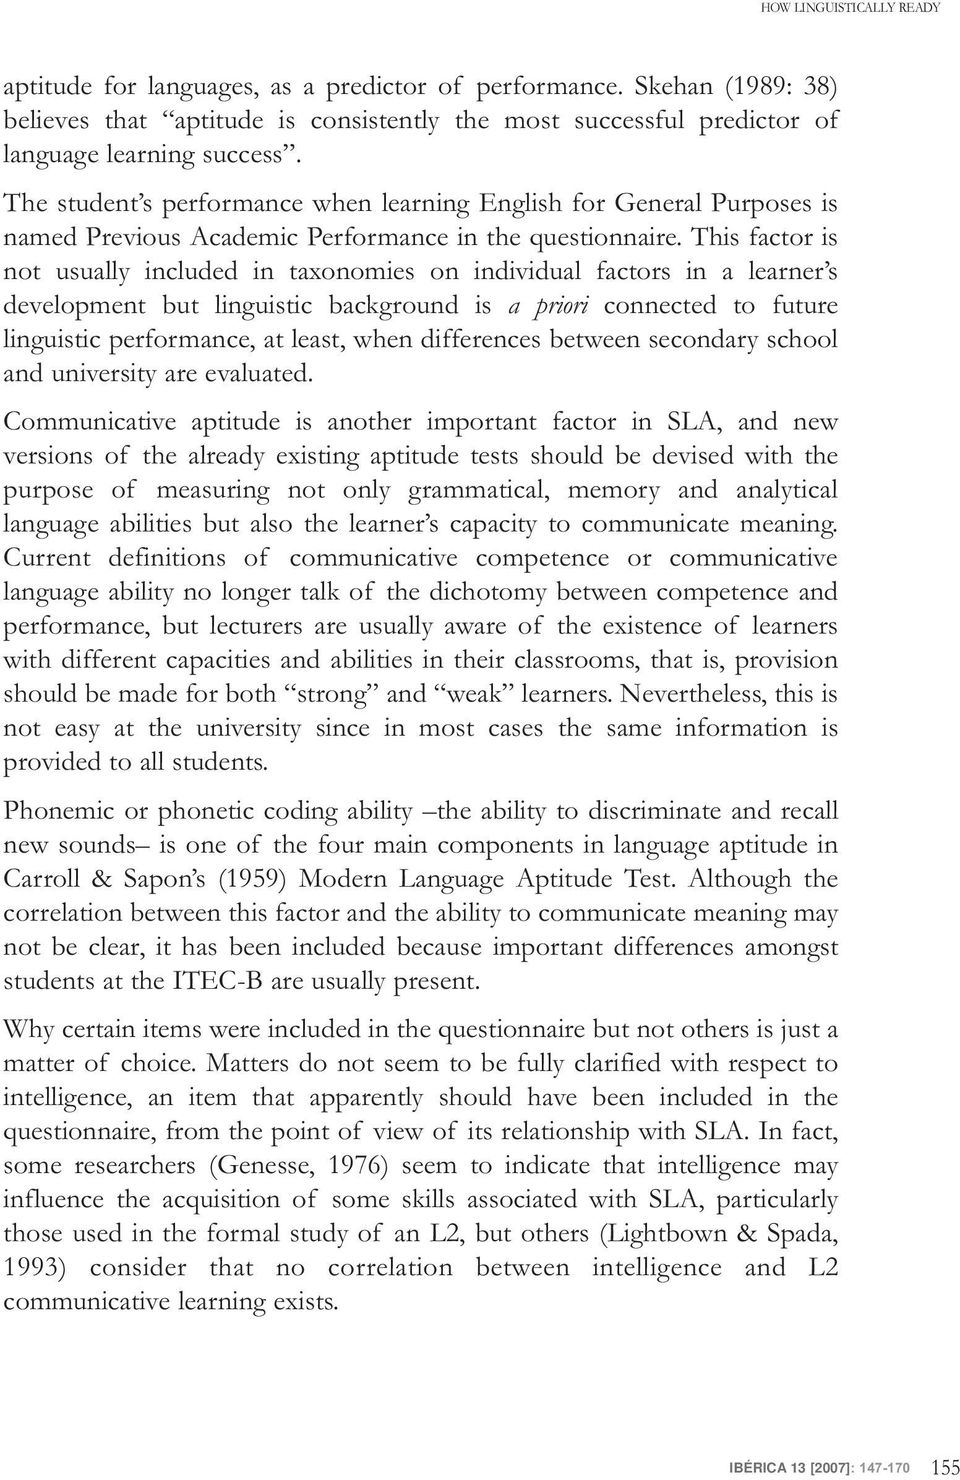 This factor is not usually included in taxonomies on individual factors in a learner s development but linguistic background is a priori connected to future linguistic performance, at least, when